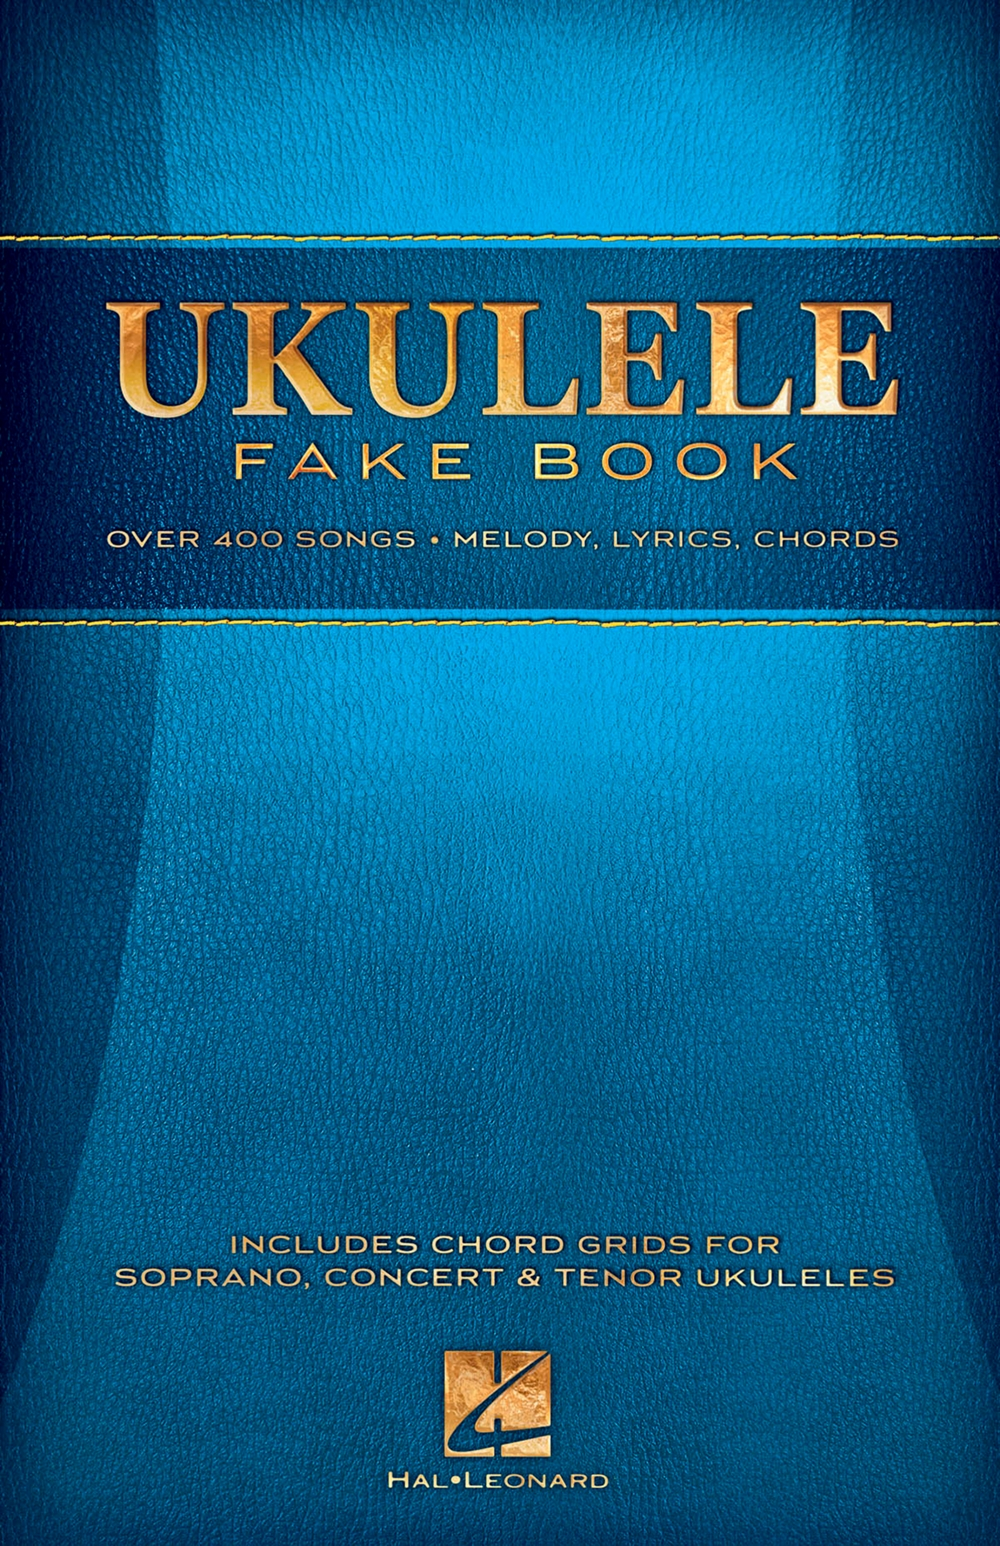 Hal leonard ukulele fake book 1476812934 ebay image is loading hal leonard ukulele fake book hexwebz Images